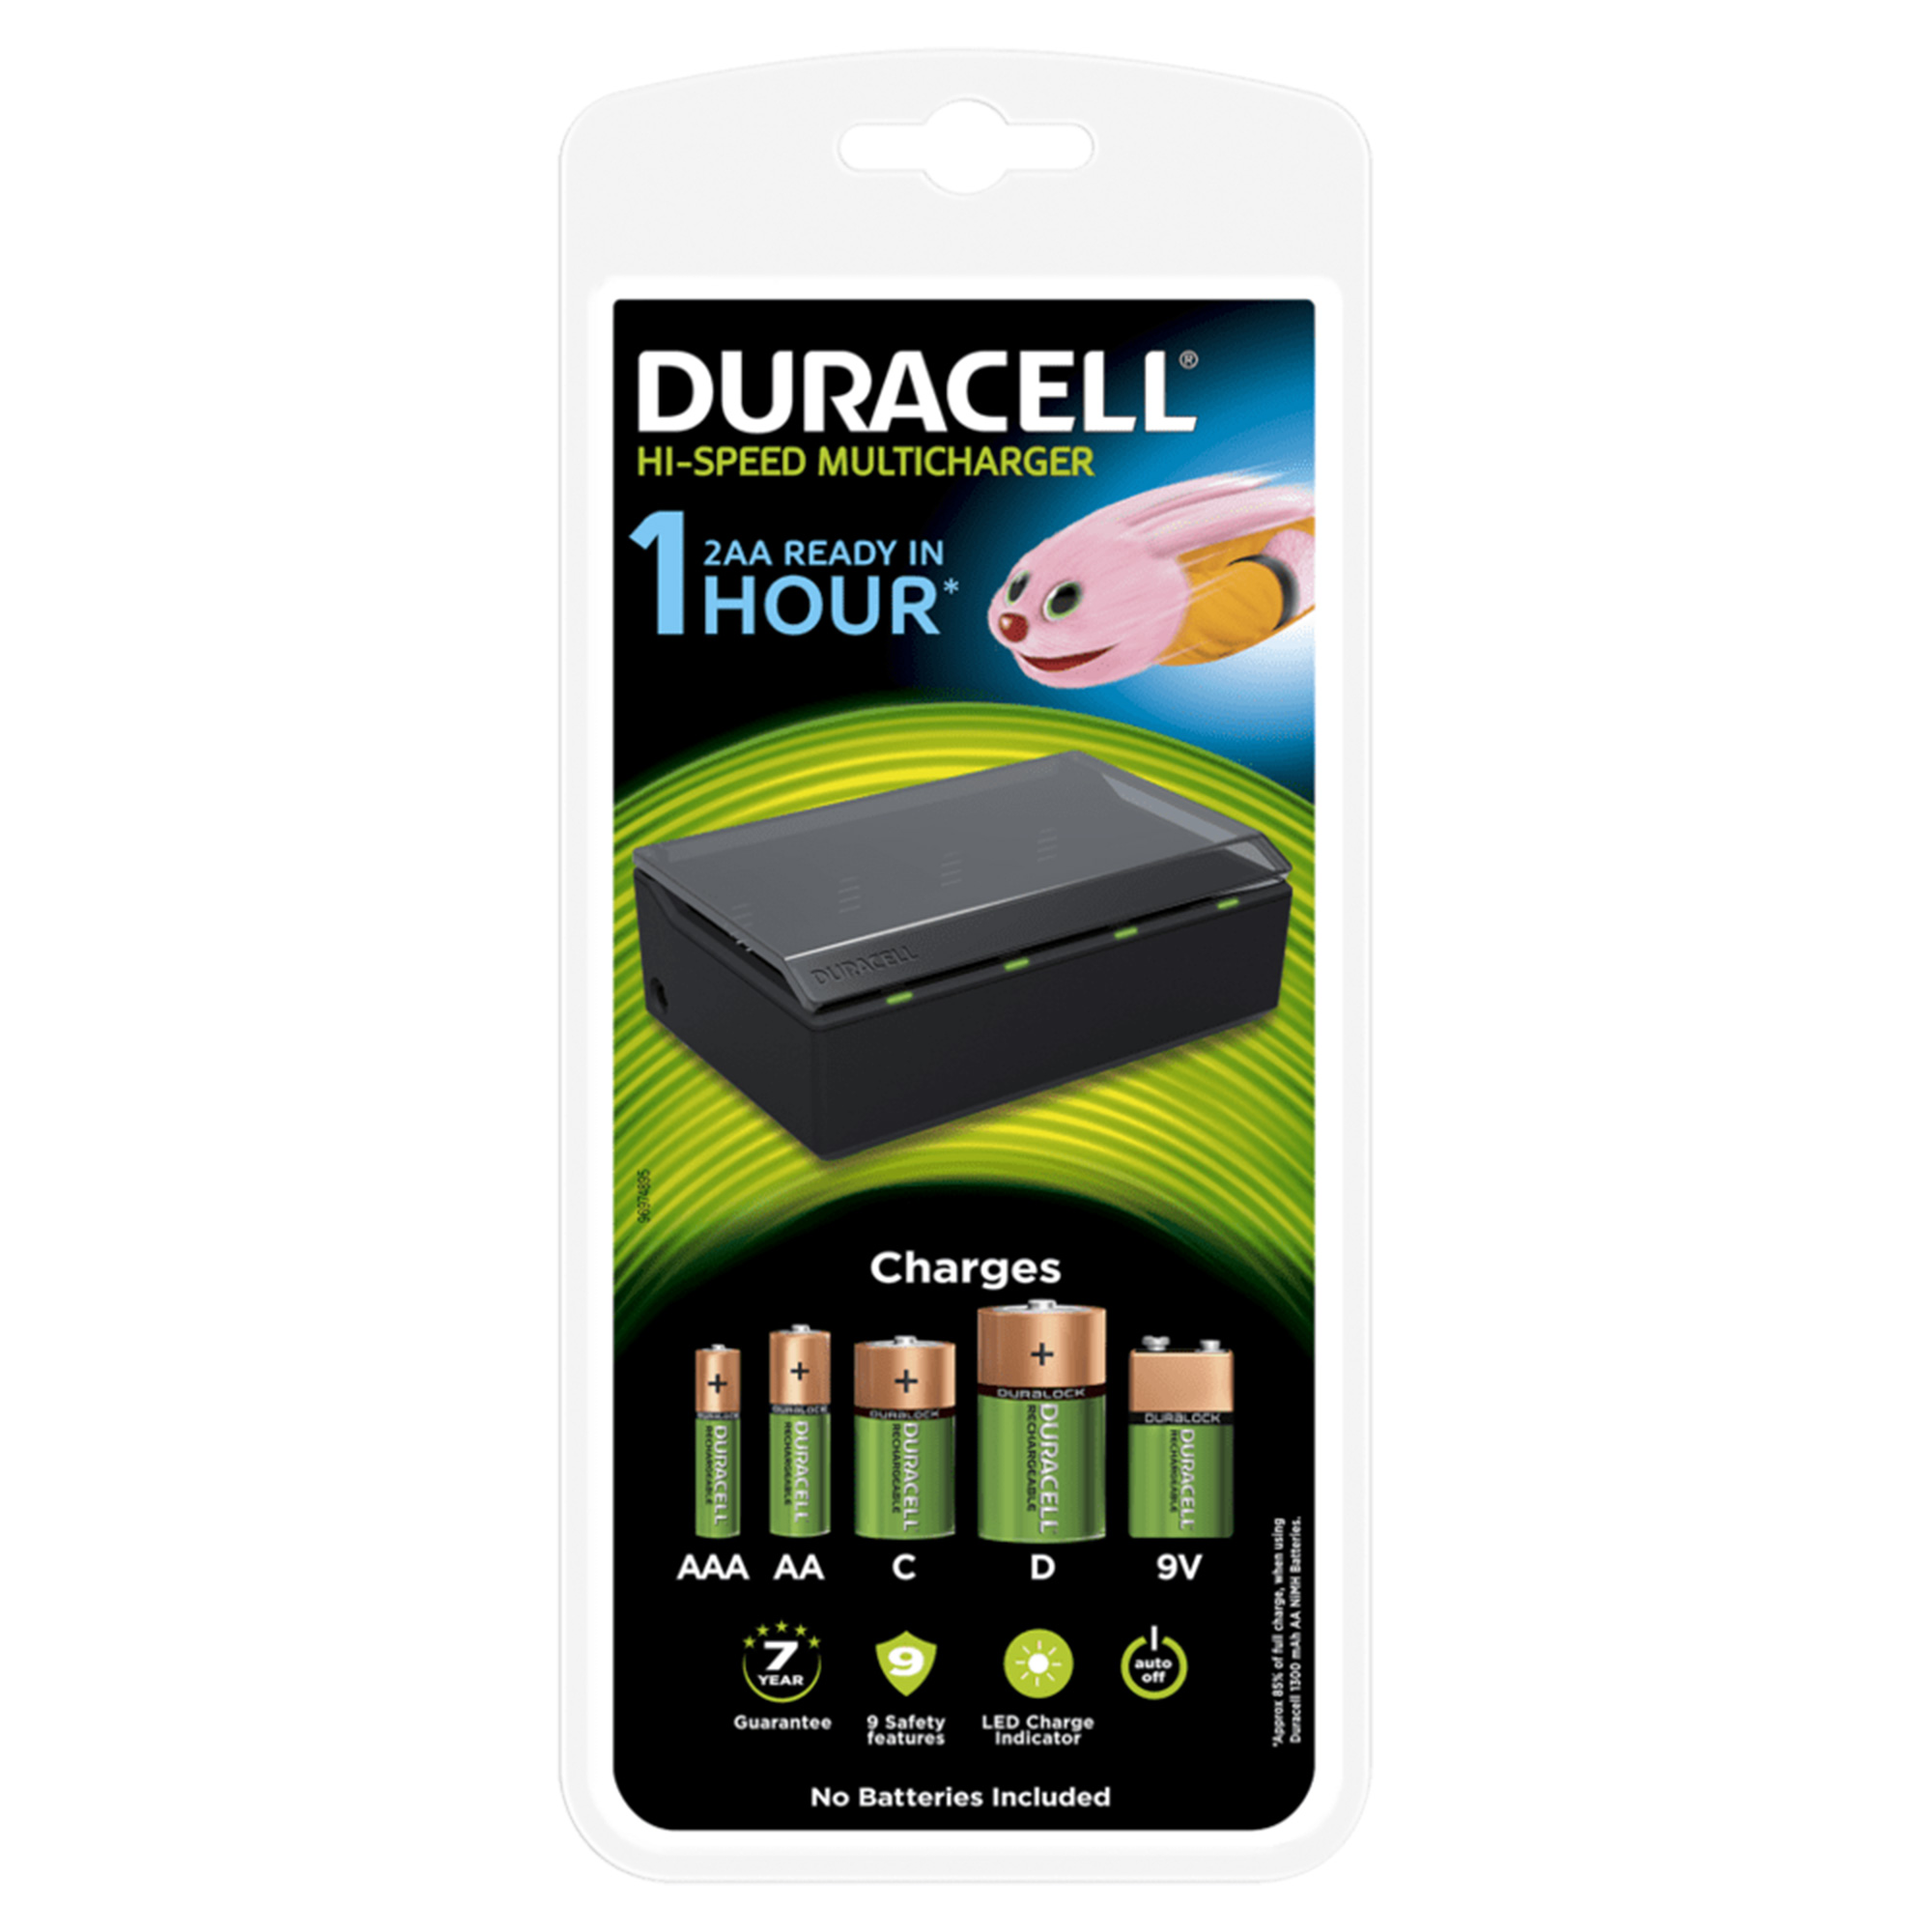 Duracell Cef22 Duracell 1 Hour Universal Multi Charger